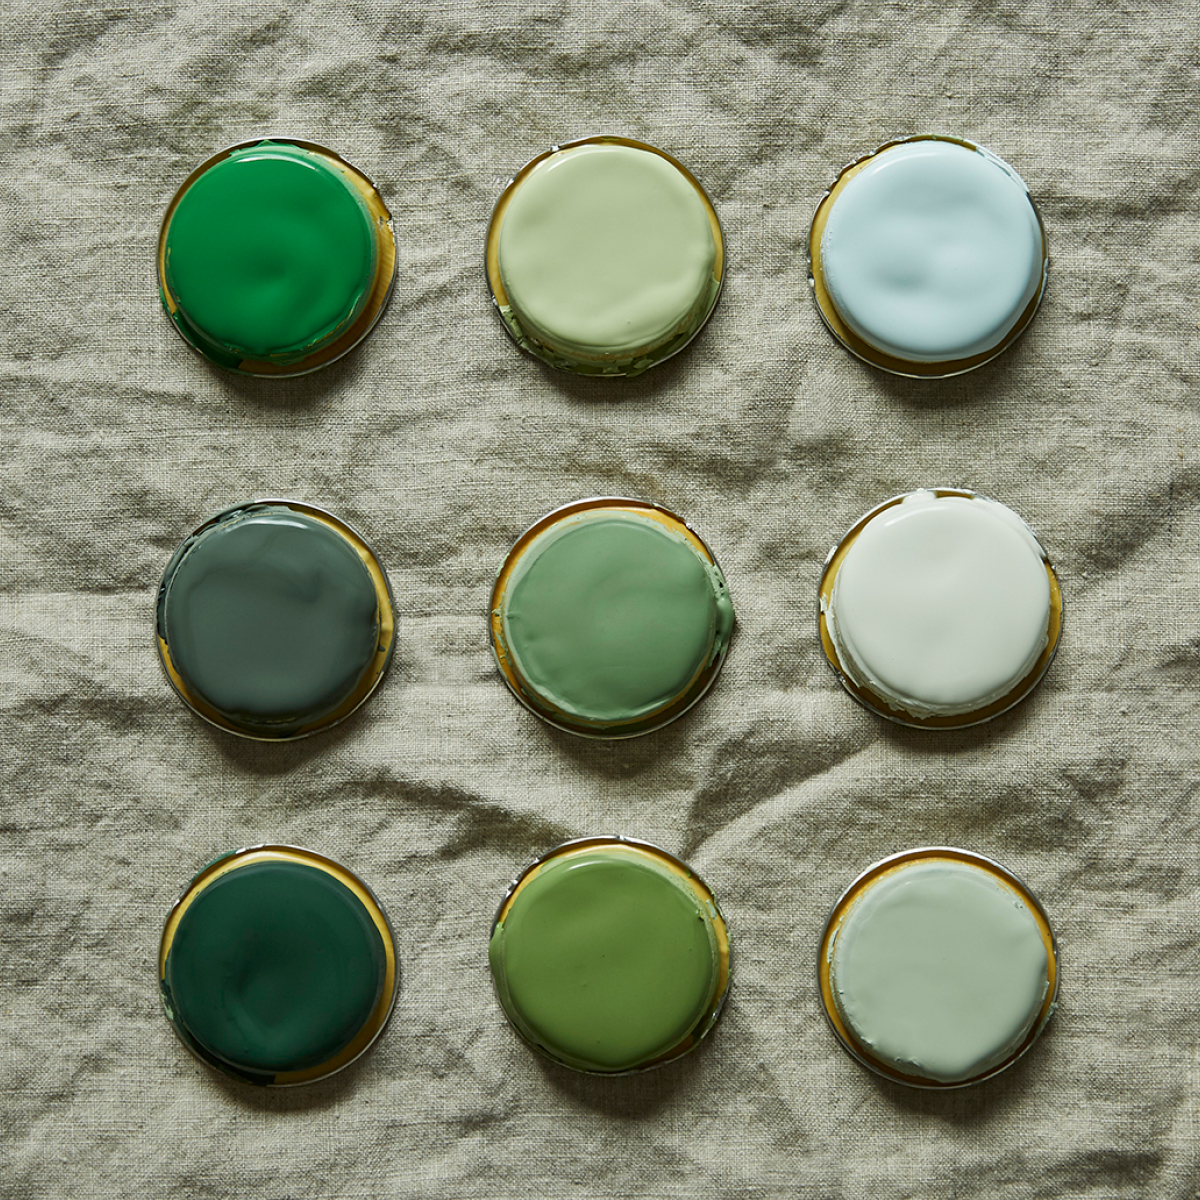 What makes Earthborn different? Our paints are green, eco friendly and healthier to live with